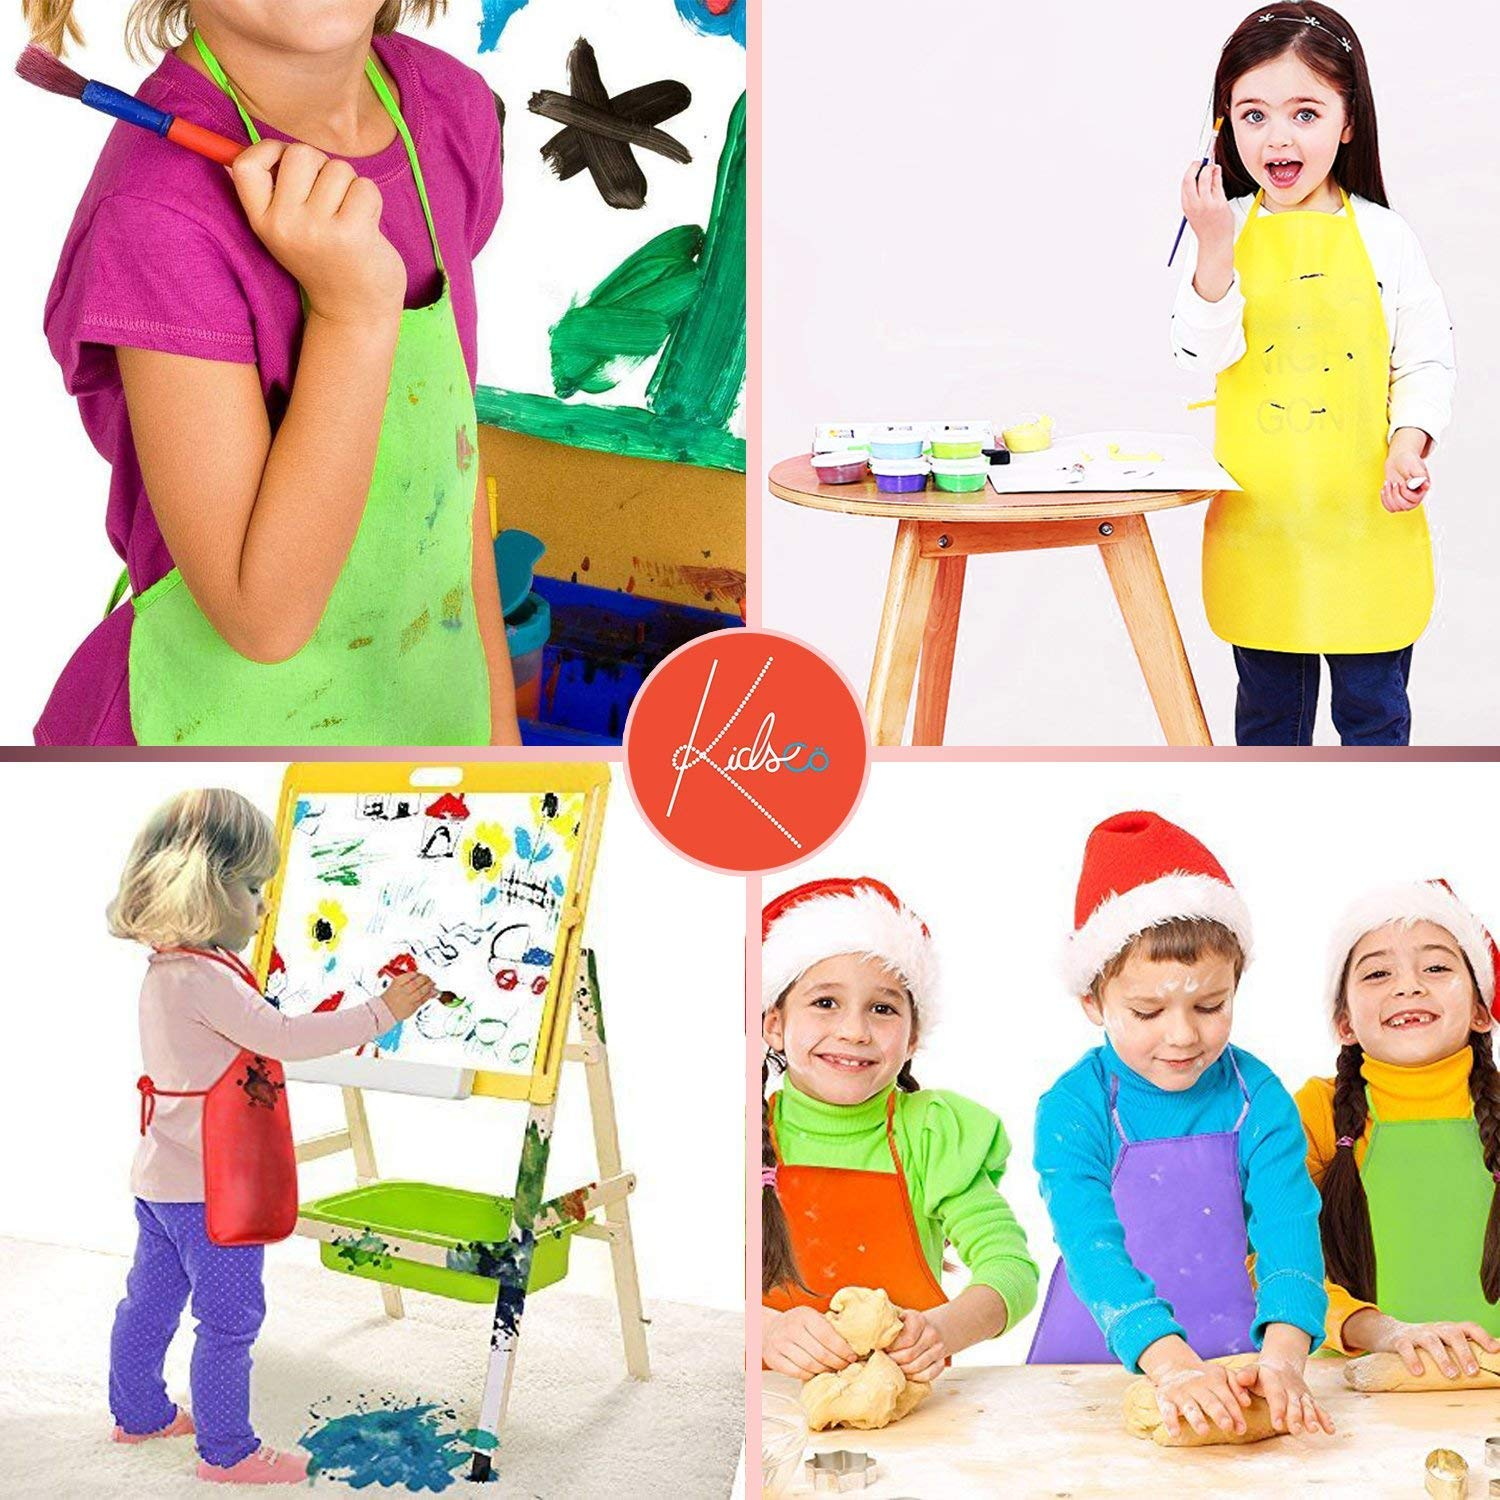 for Art and Baking Arts /& Crafts 13 X 19 Inches with 14 Inch Ties Assorted Colors Painting Activity Kicko Childrens Artists Fabric Aprons 12 Pack Classroom Great for Kitchen